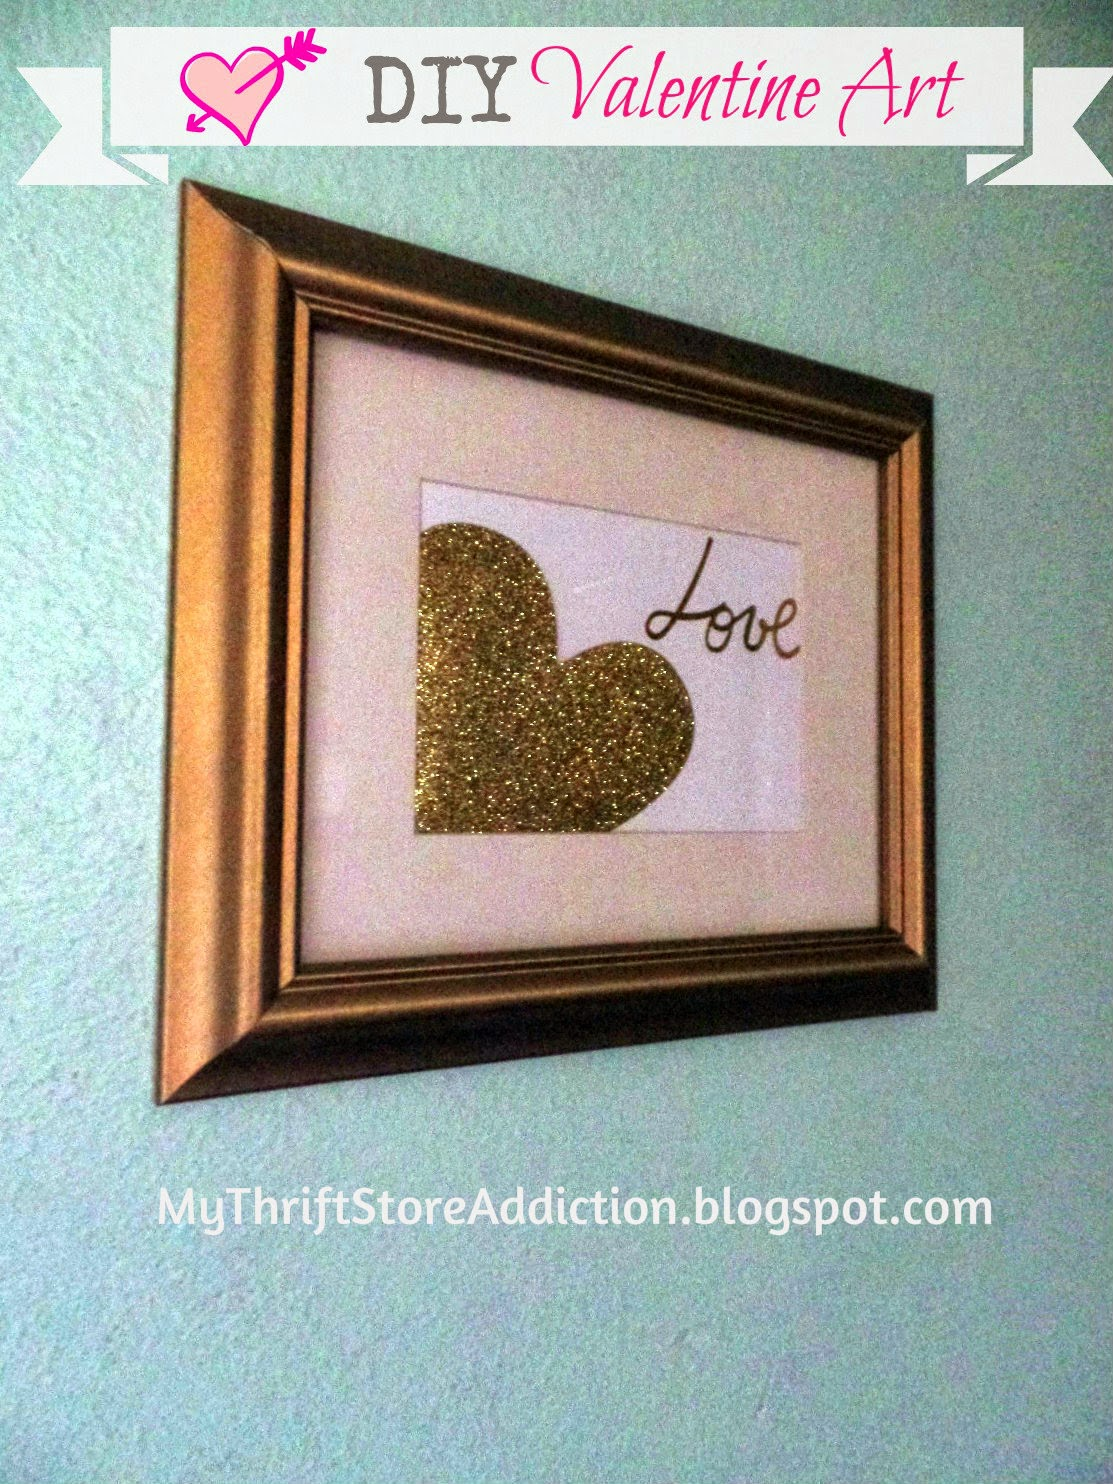 http://mythriftstoreaddiction.blogspot.com/2015/01/diy-valentine-art-for-1.html